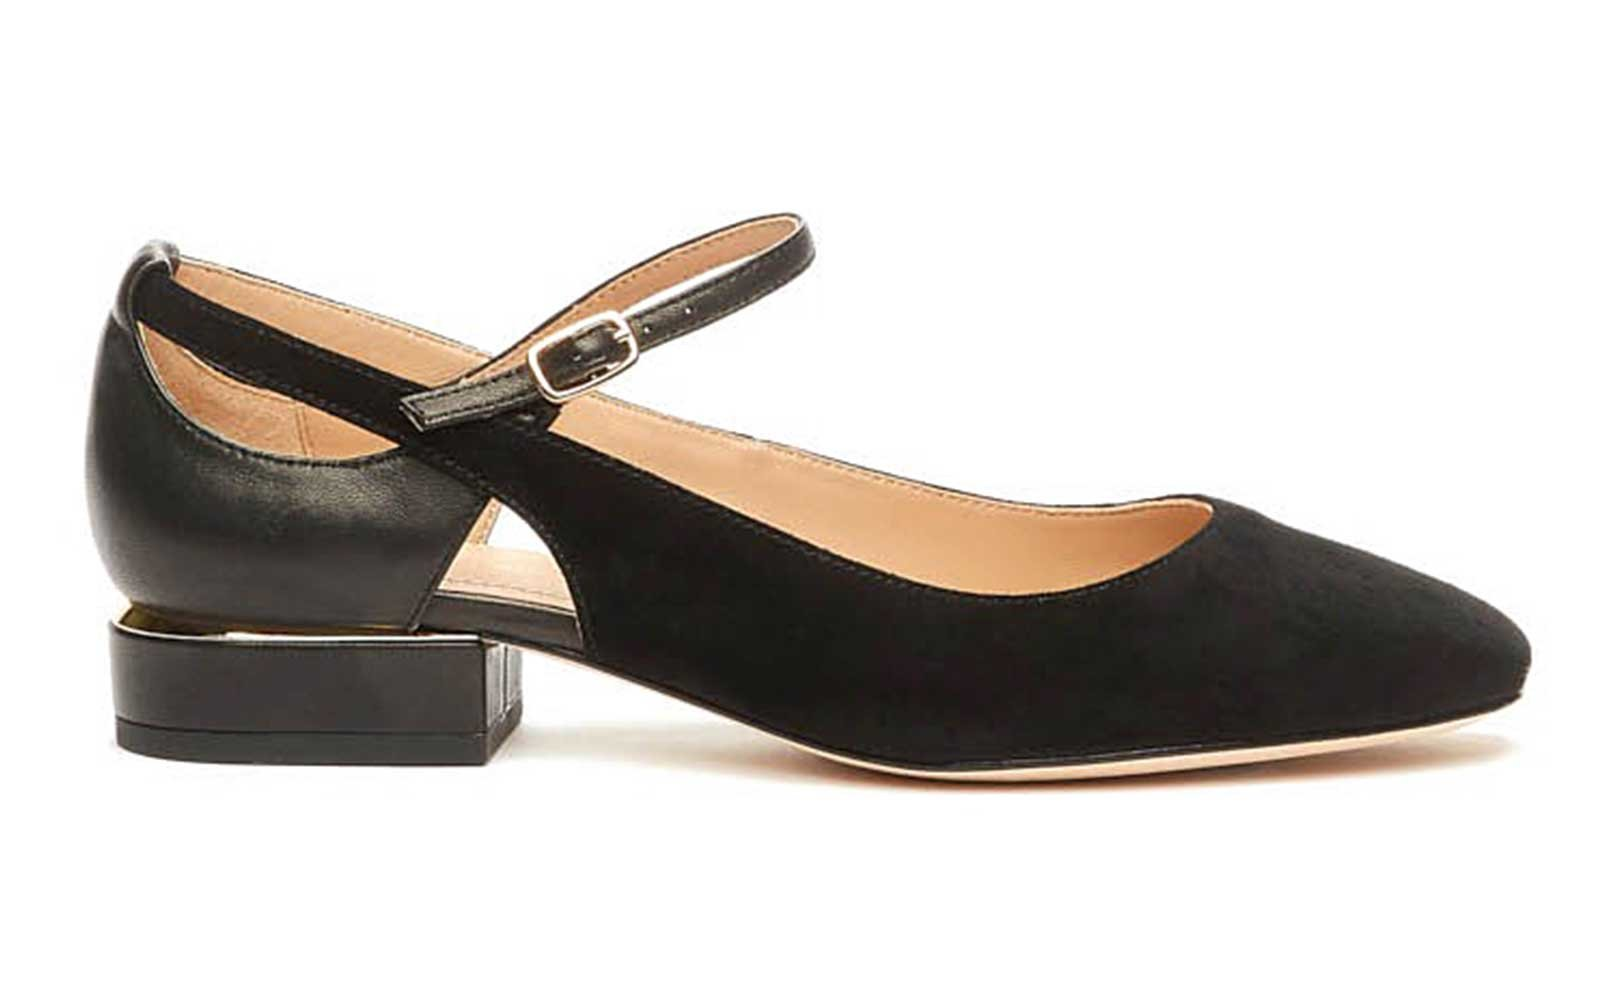 Suede and Leather Mary Janes